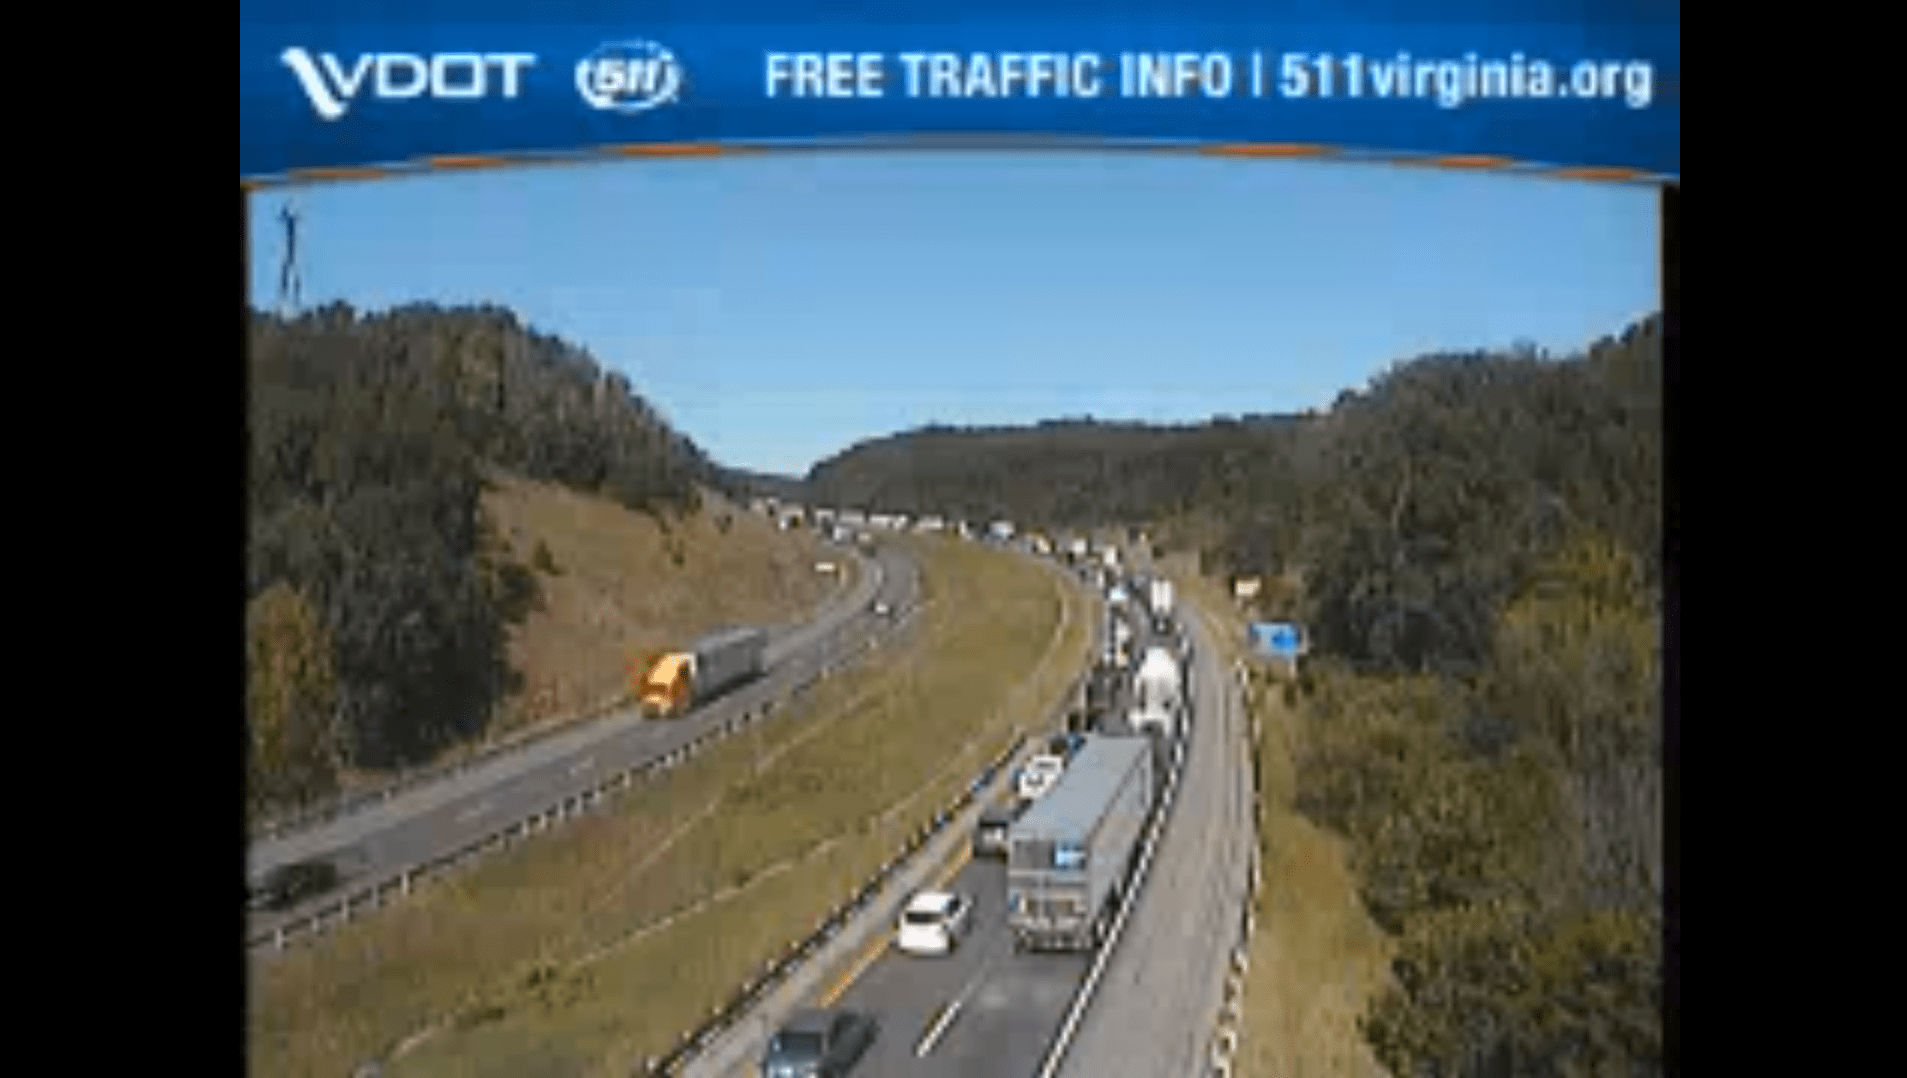 Tractor trailer accident in Roanoke Co  causes 9-mile backup